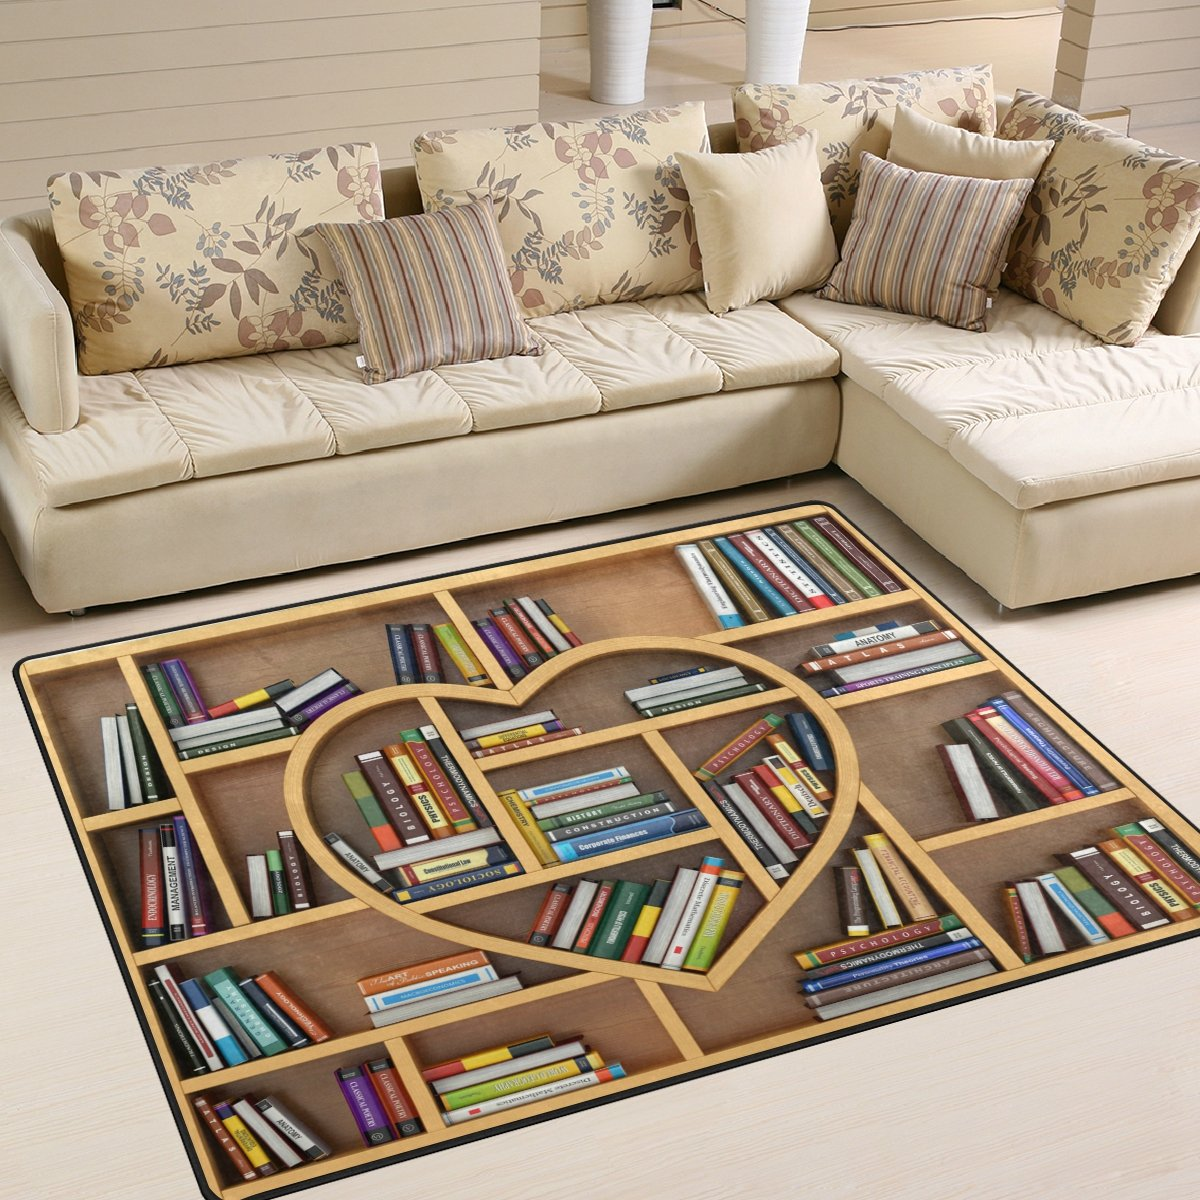 ALAZA Educational Bookshelf Area Rug Rugs for Living Room Bedroom 5'3 x 4'